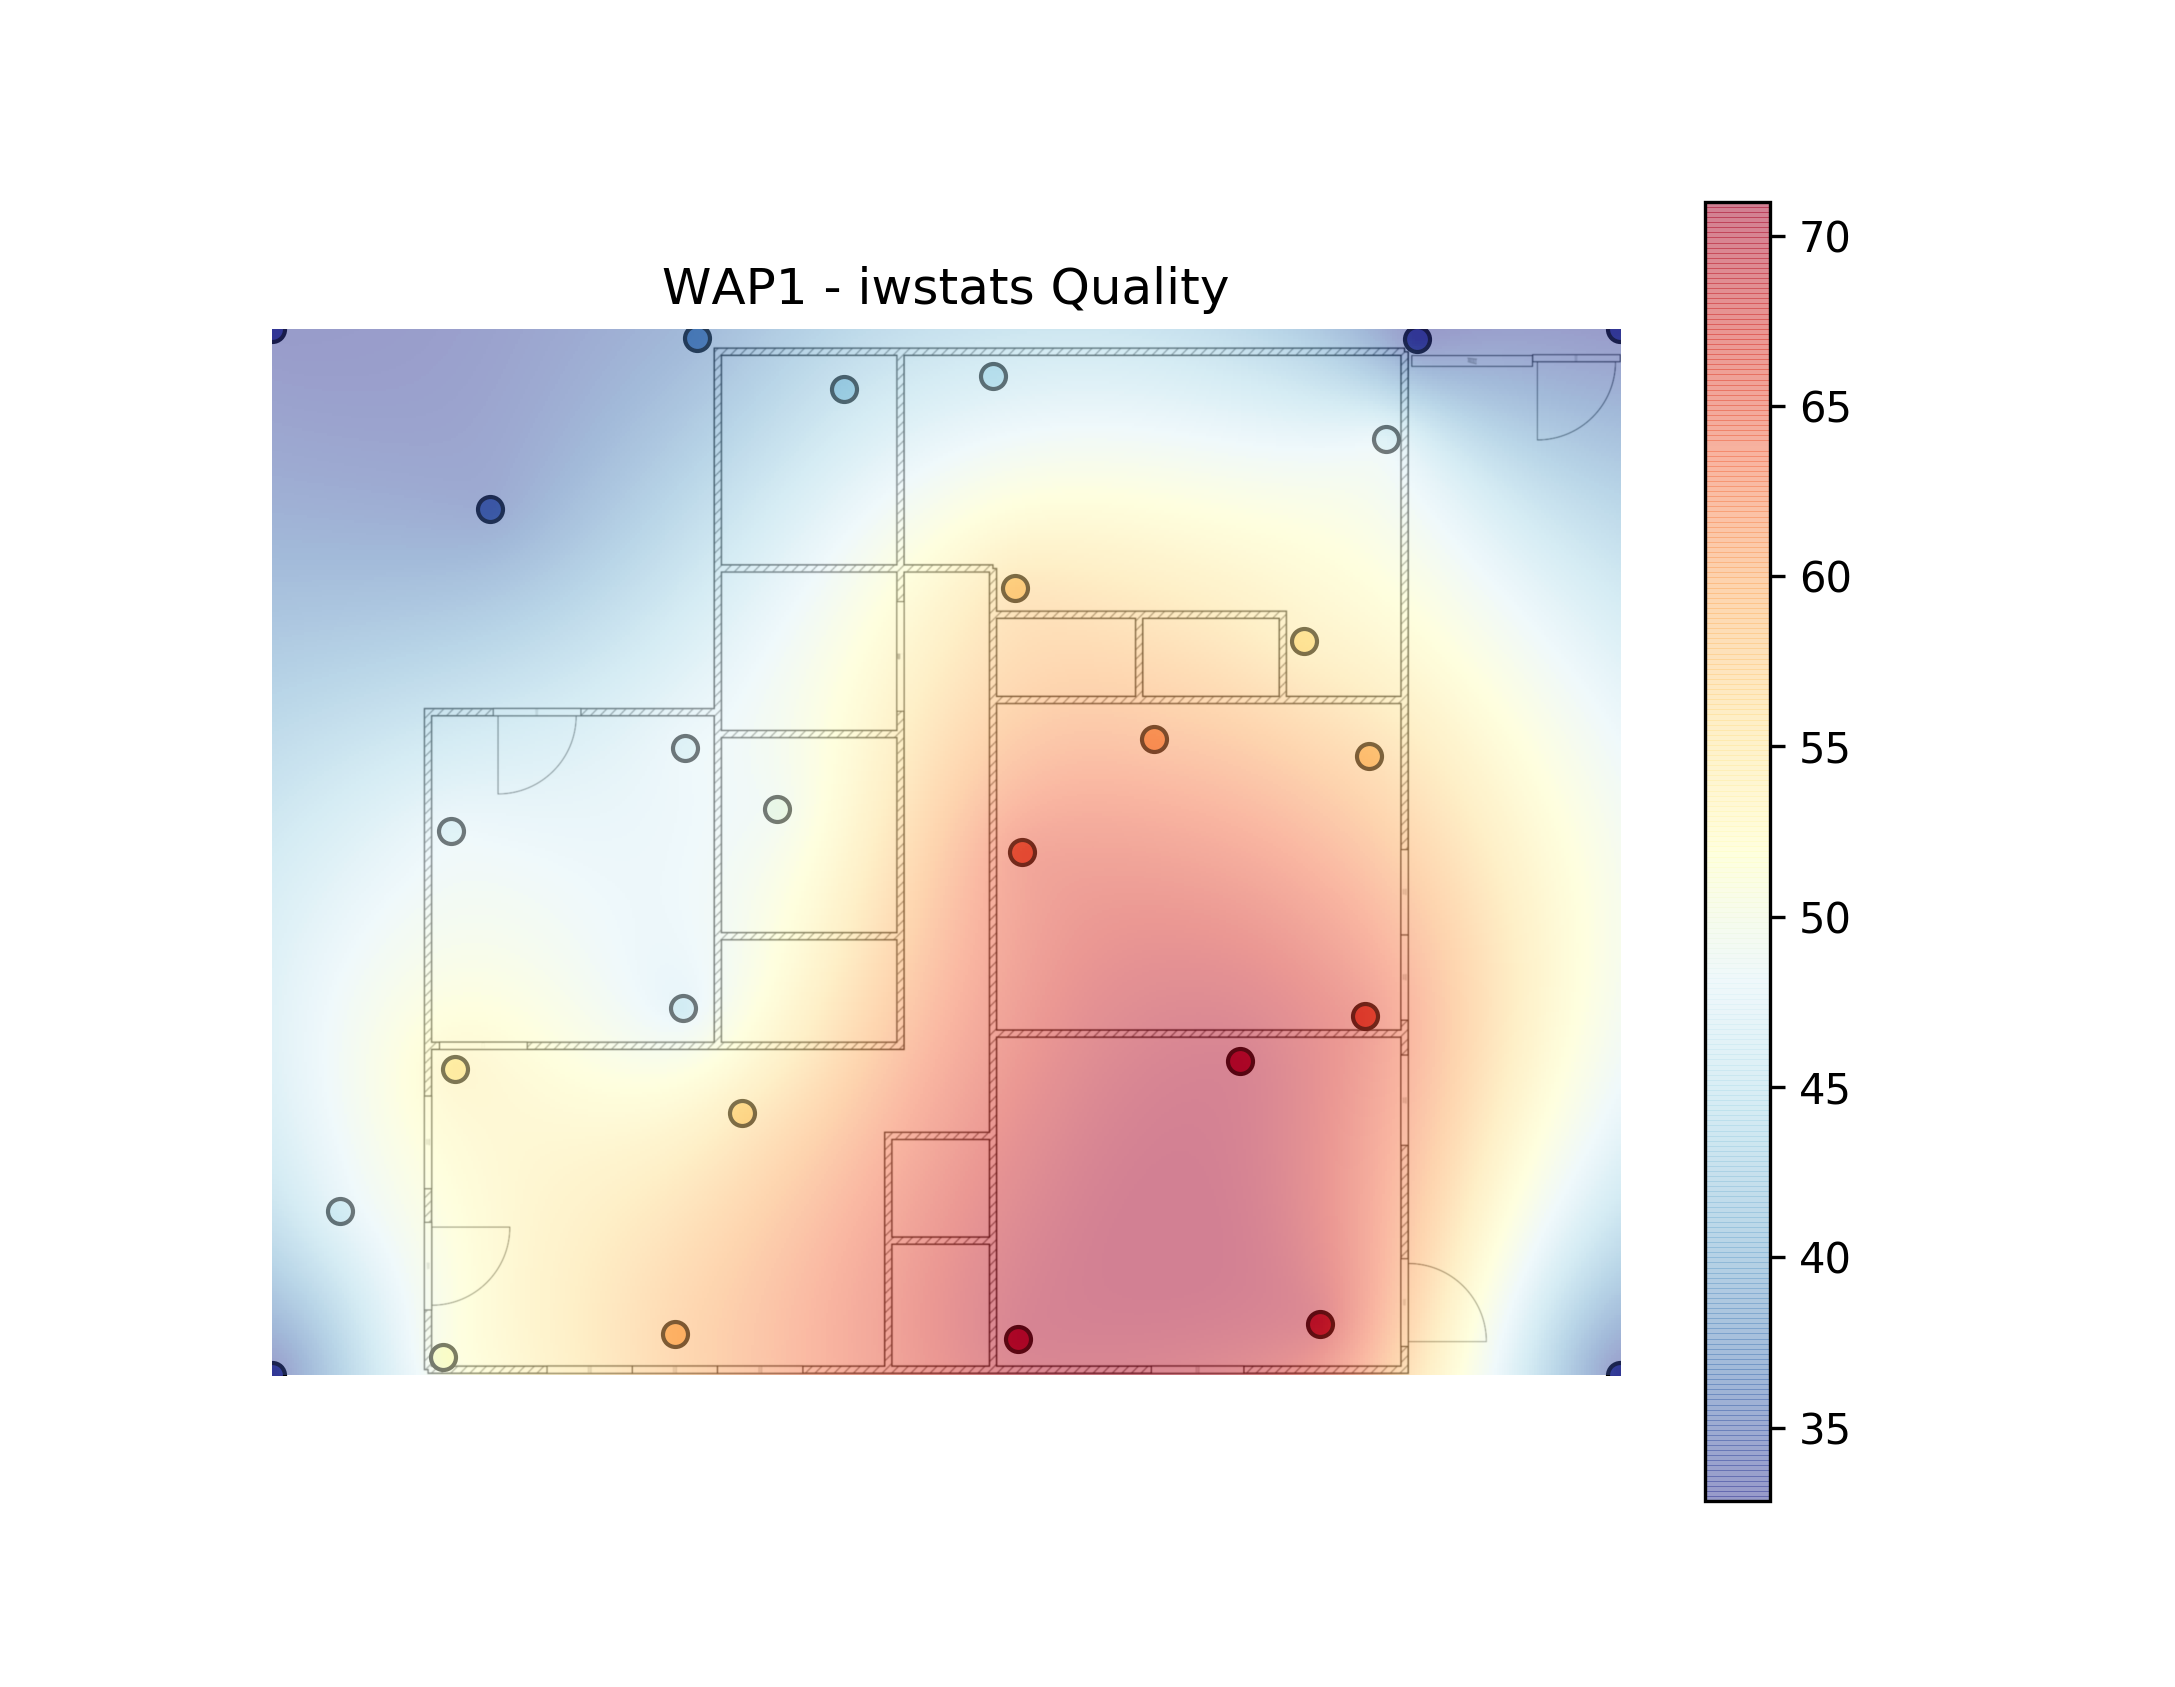 example quality heatmap